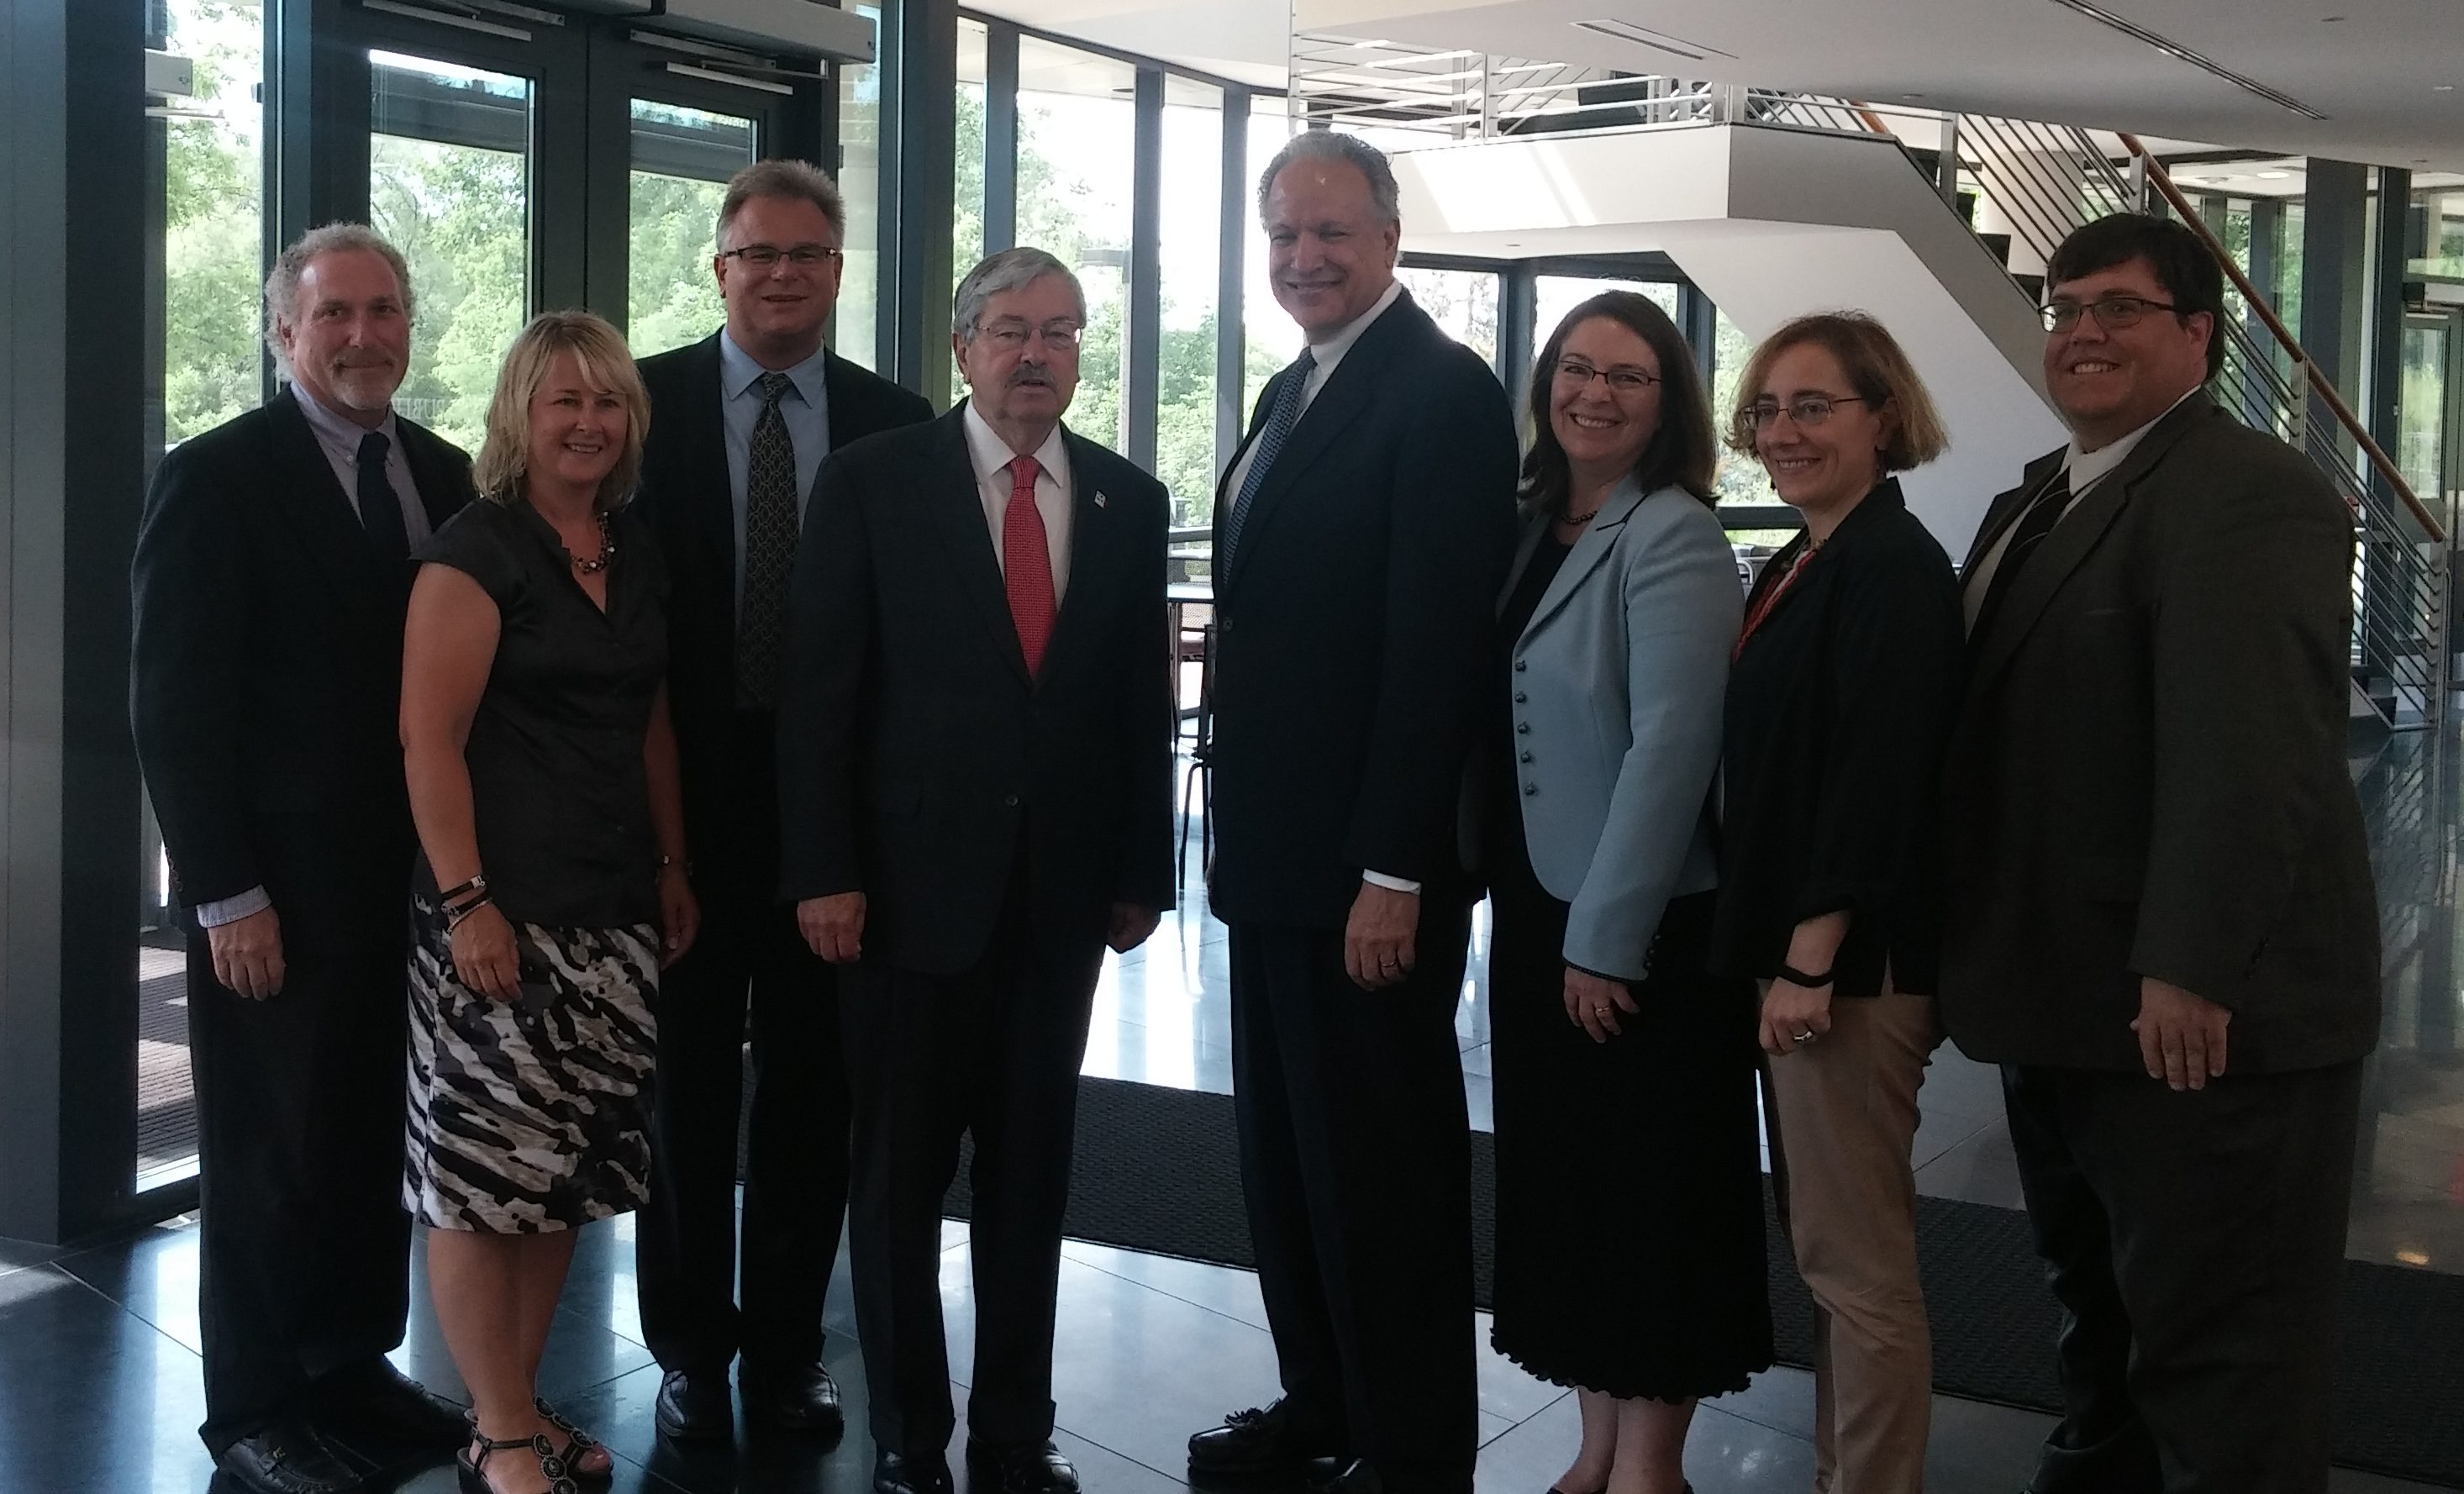 IPRC and UI researchers with Dr. Rosekind (NHTSA) and Gov. Branstad at the Drowsy Driving Summit.